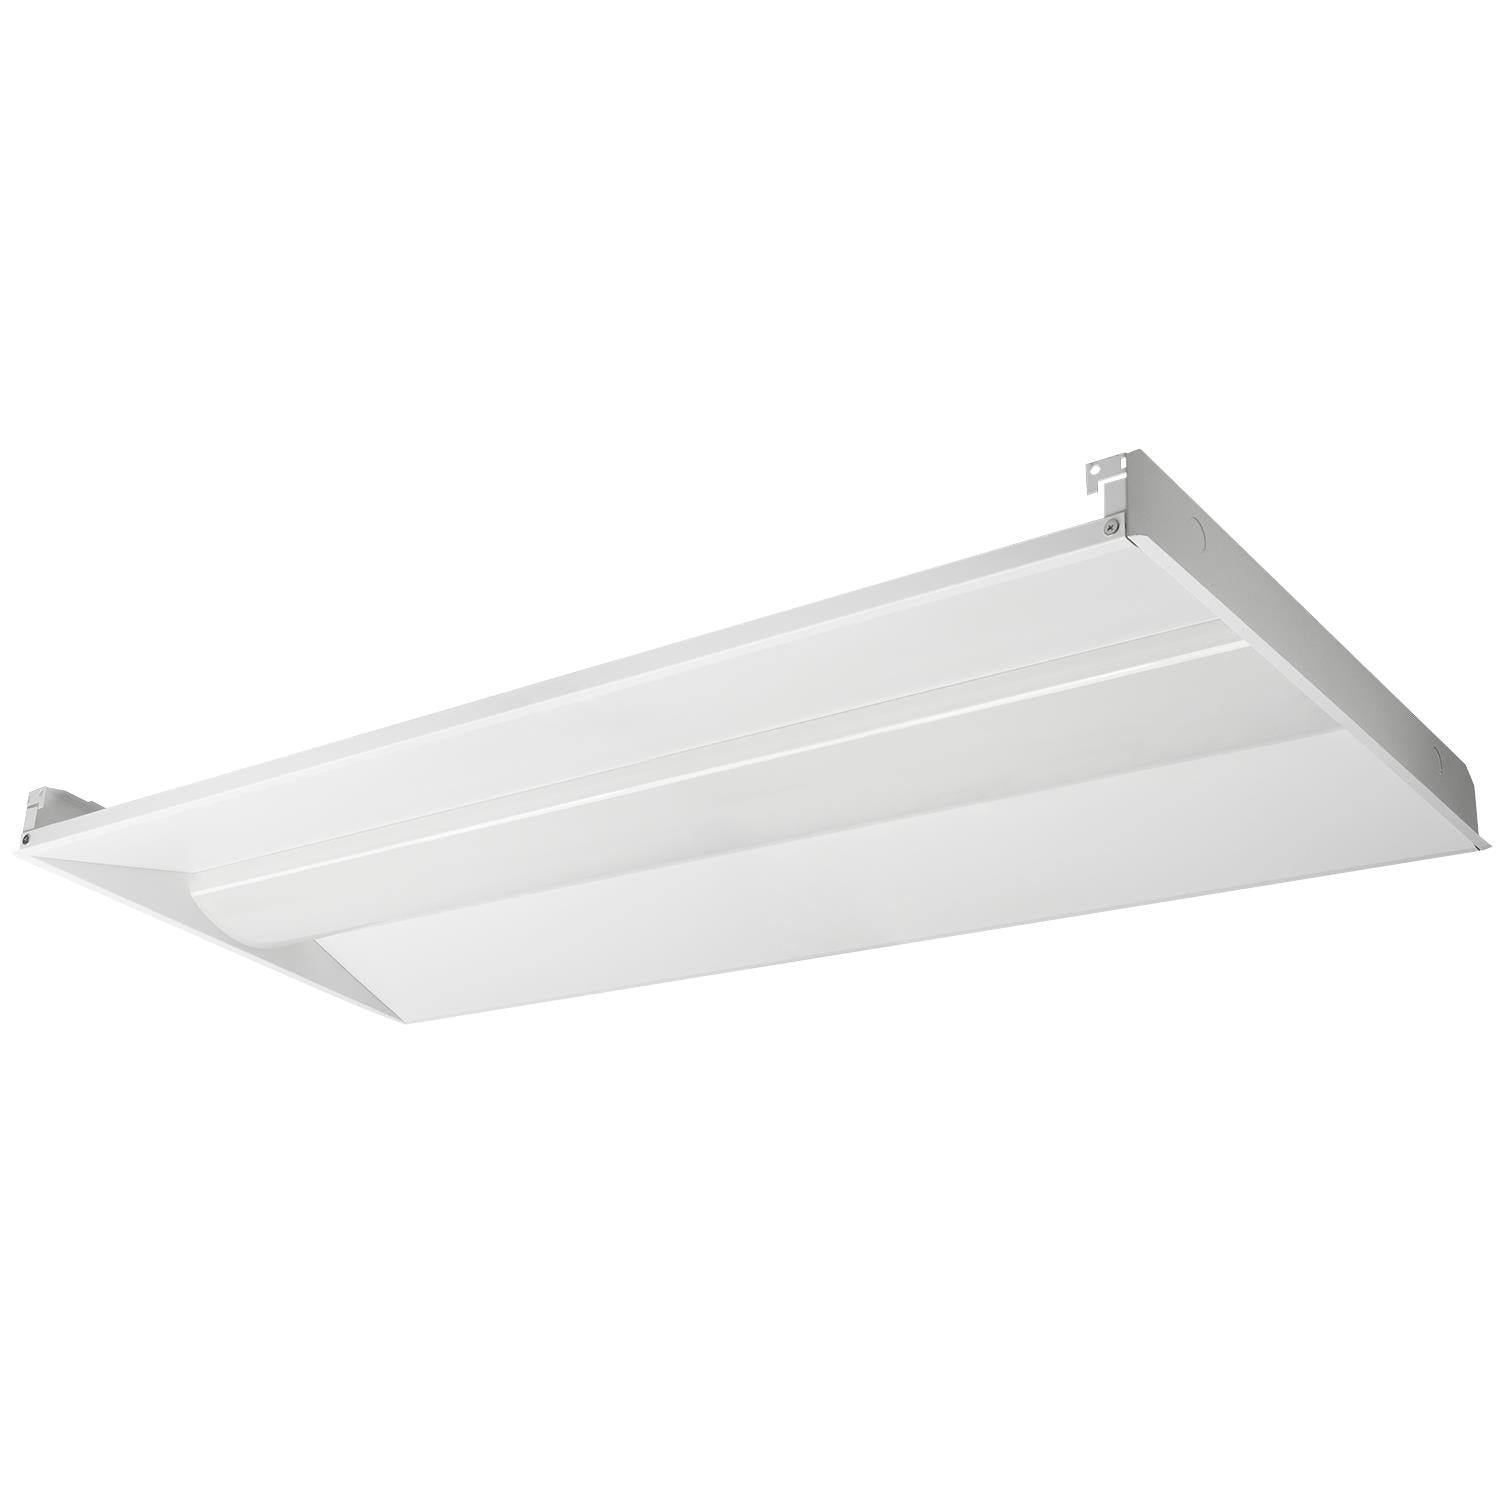 SUNLITE Fixtures 2x4 Dimmable Troffer Cool White 4000K 60W 120-277V